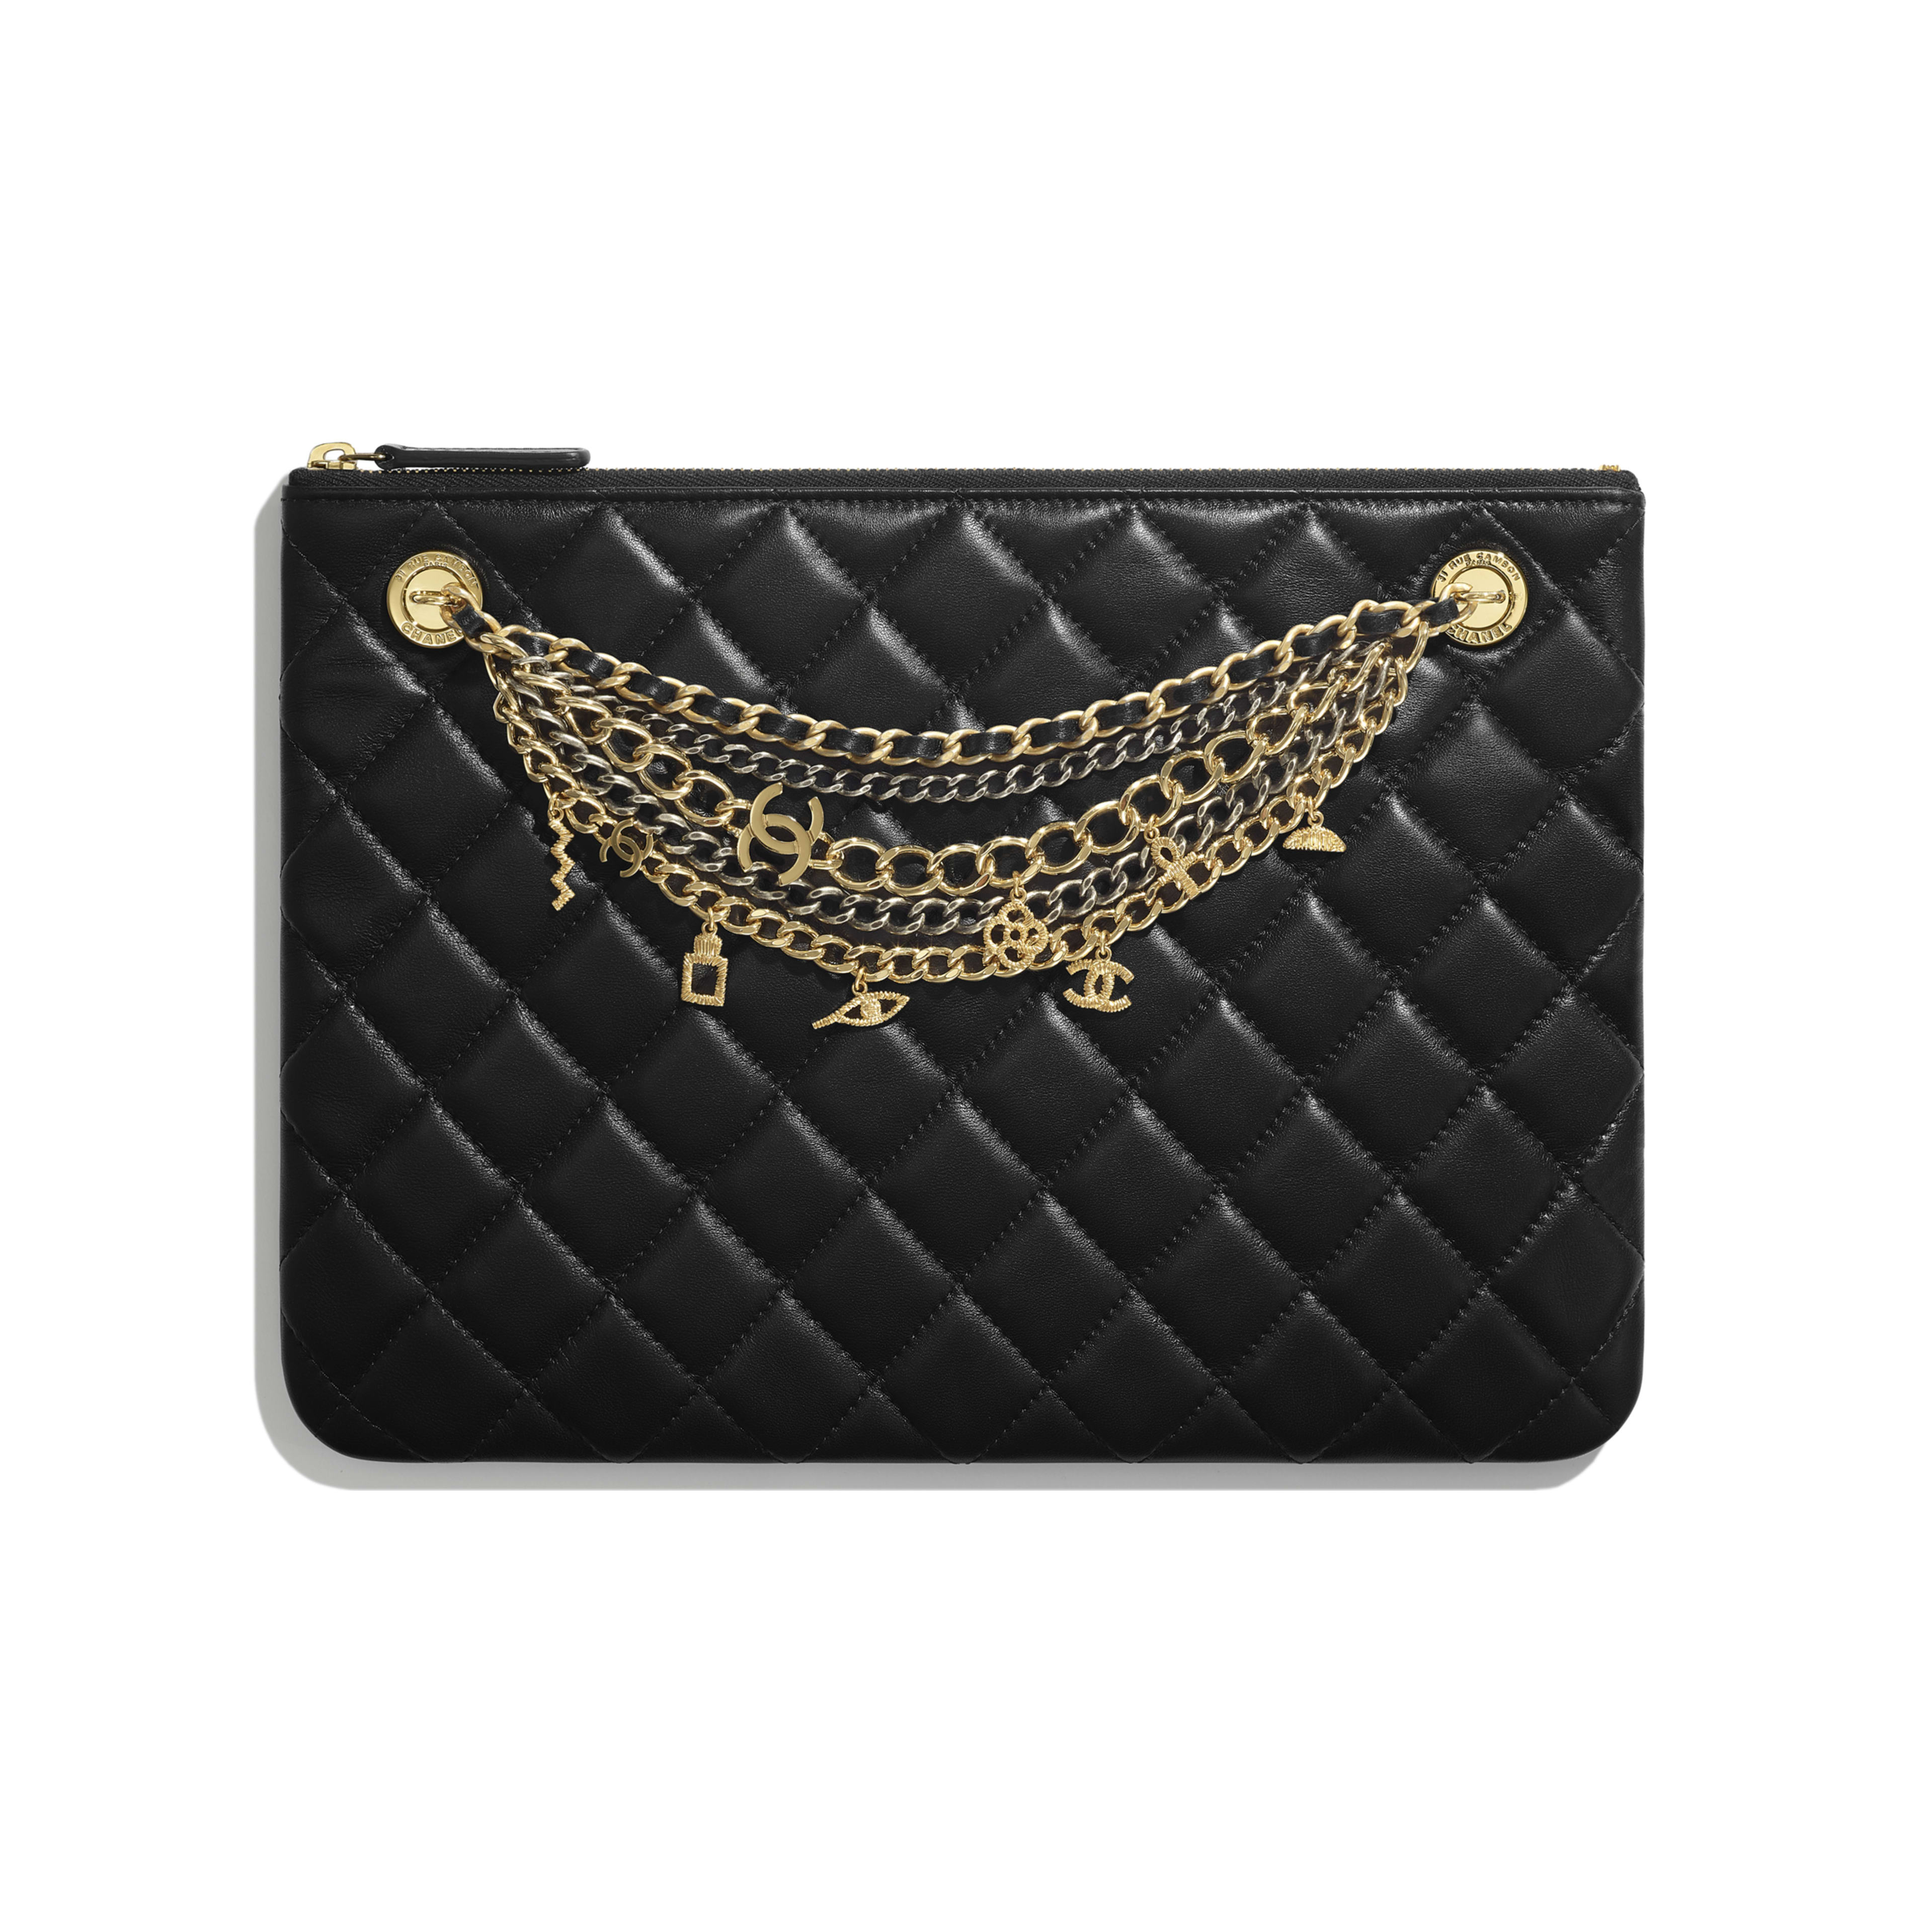 Pouch - Black - Lambskin, Gold-Tone & Silver-Tone Metal - Default view - see full sized version